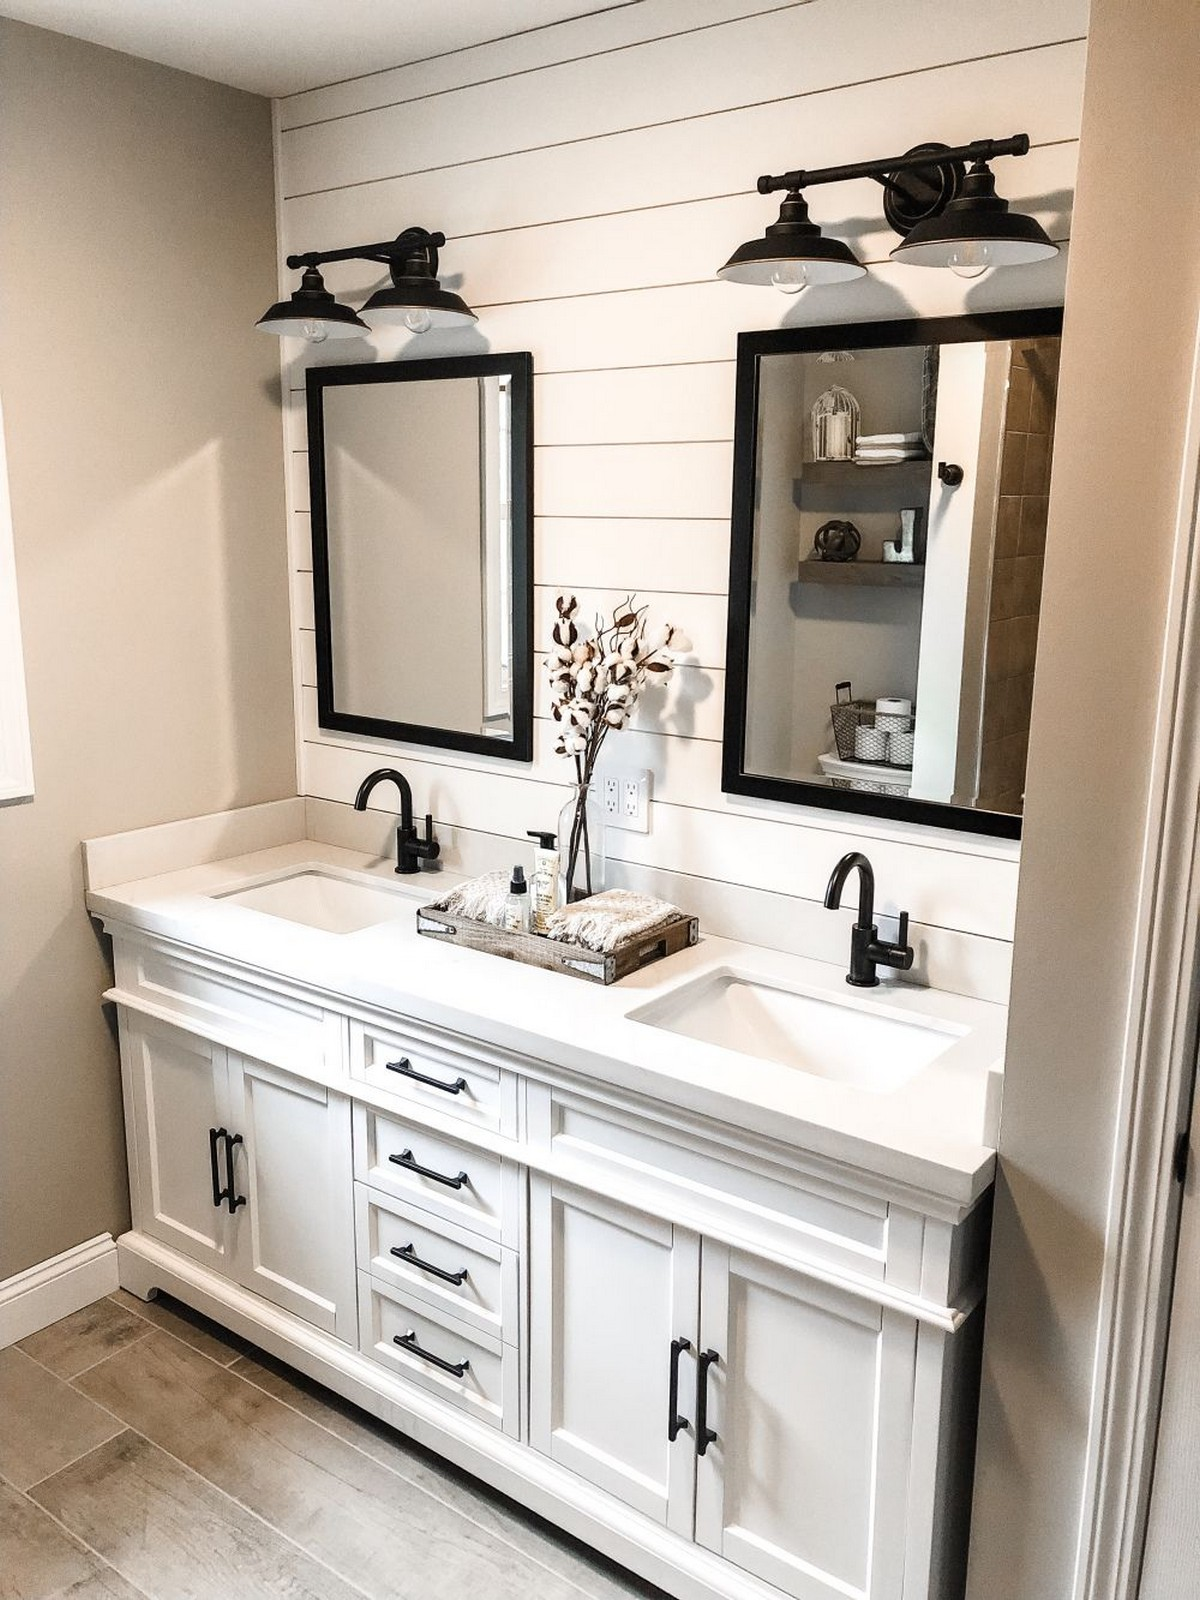 70 Master Bathroom Remodeling For Man and Woman Home Decor 35